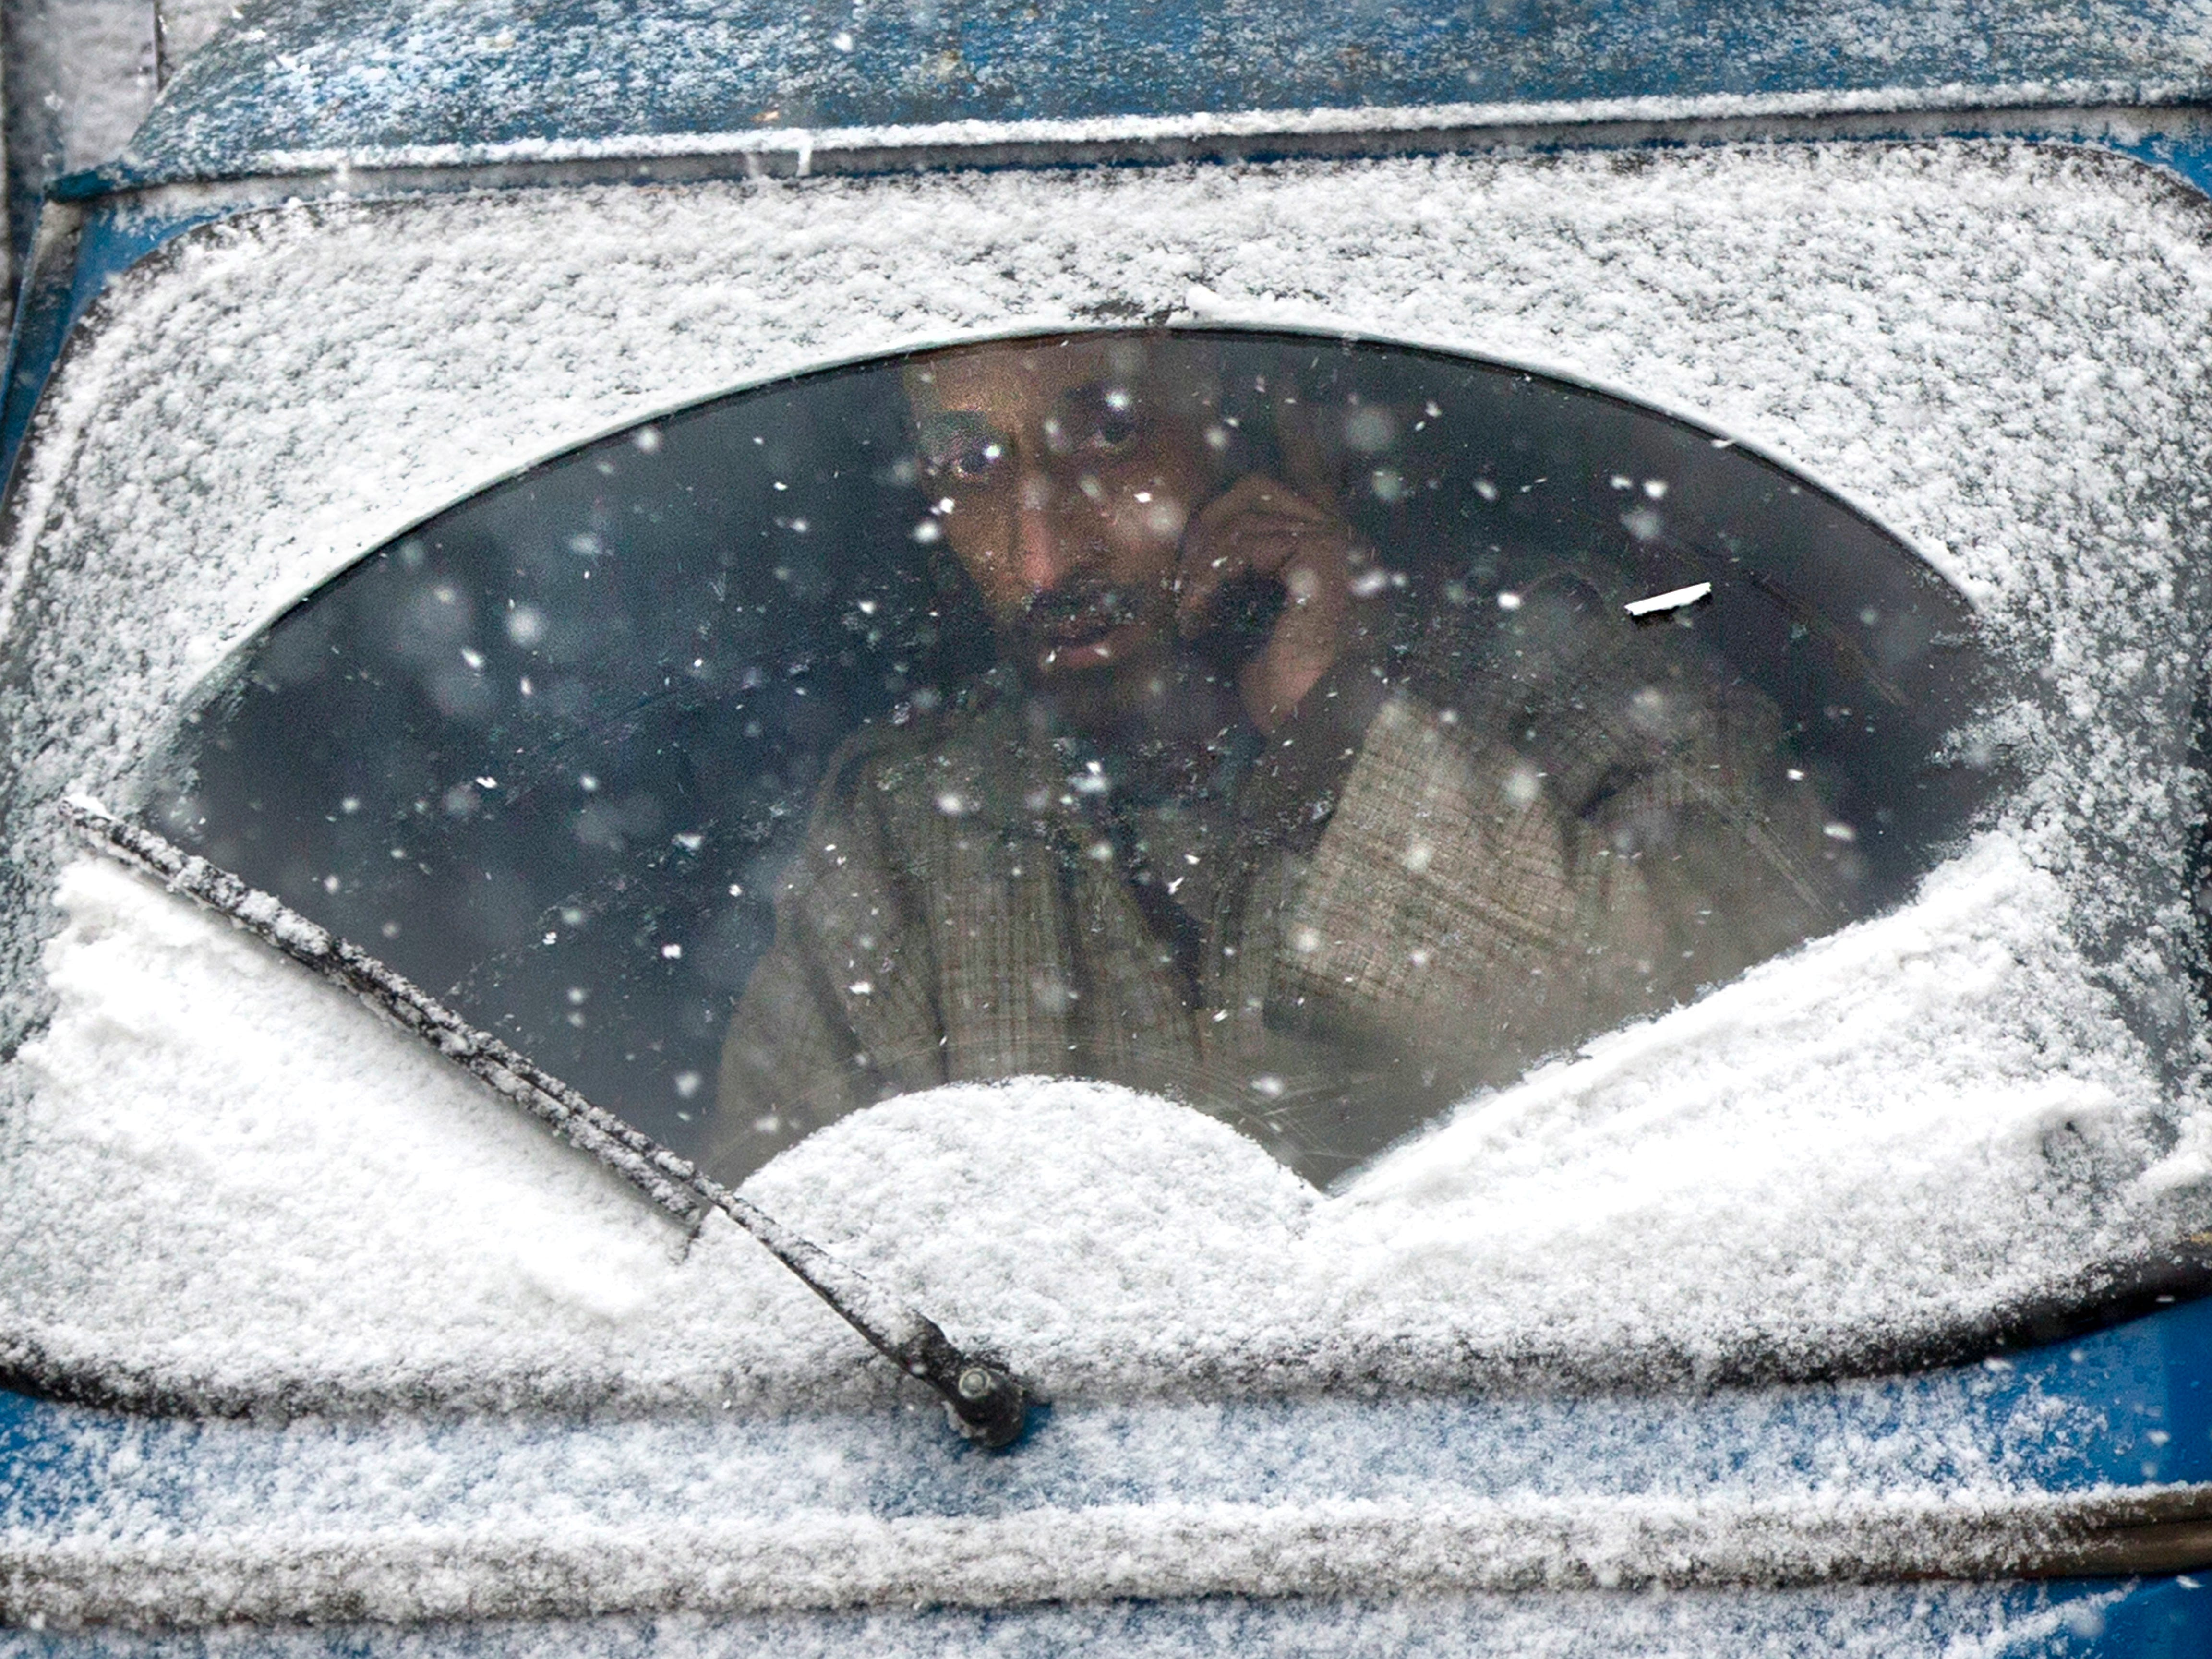 An auto-rickshaw driver looks out from the snow-covered windshield of his vehicle as the fresh snow falls in Srinagar, Indian, Jan. 4, 2019.